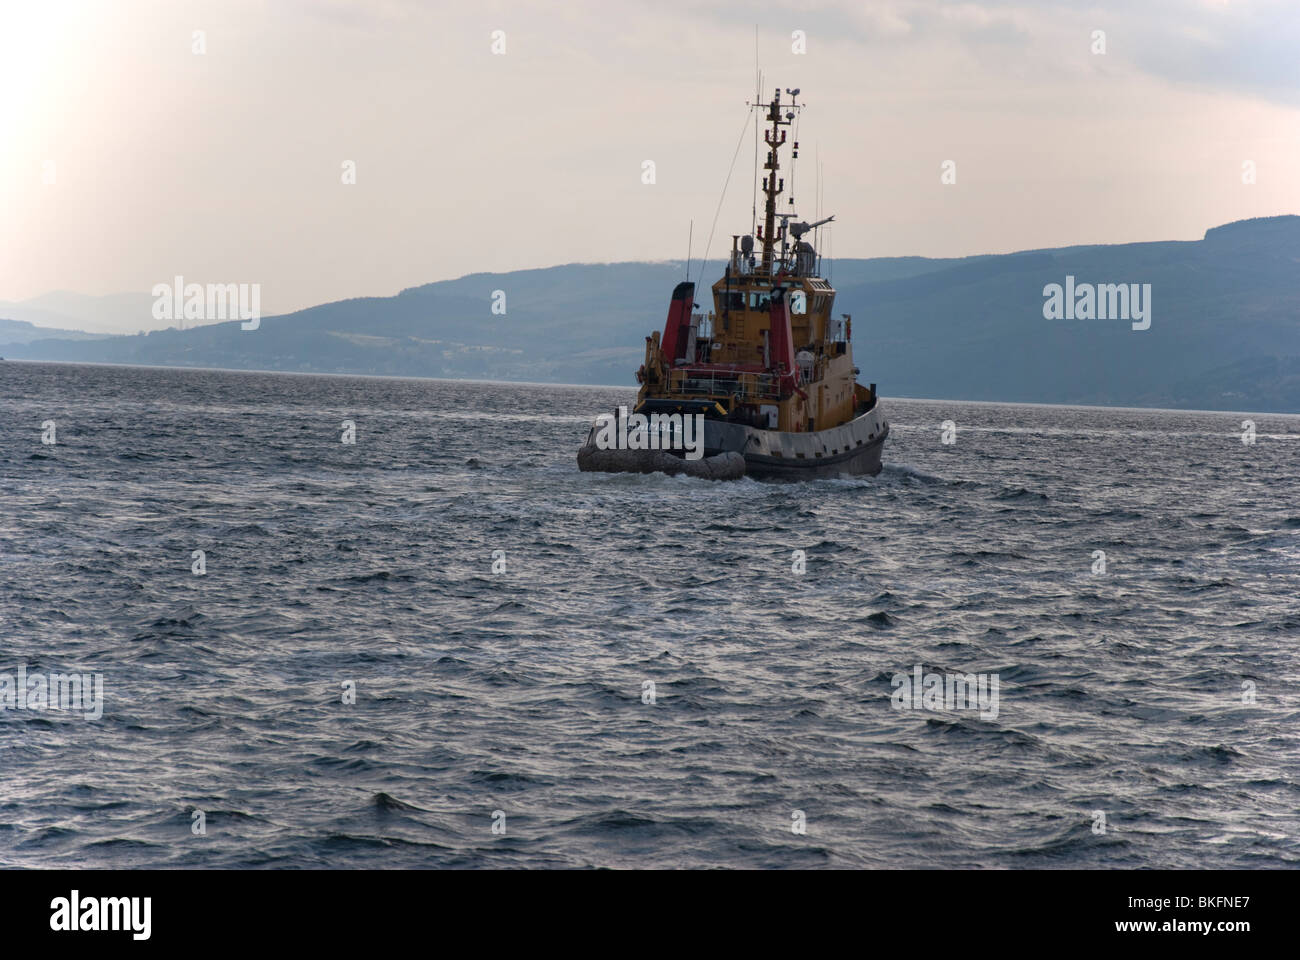 The S D Nimble Support Tug in the Firth of Clyde Gourock Scotland - Stock Image